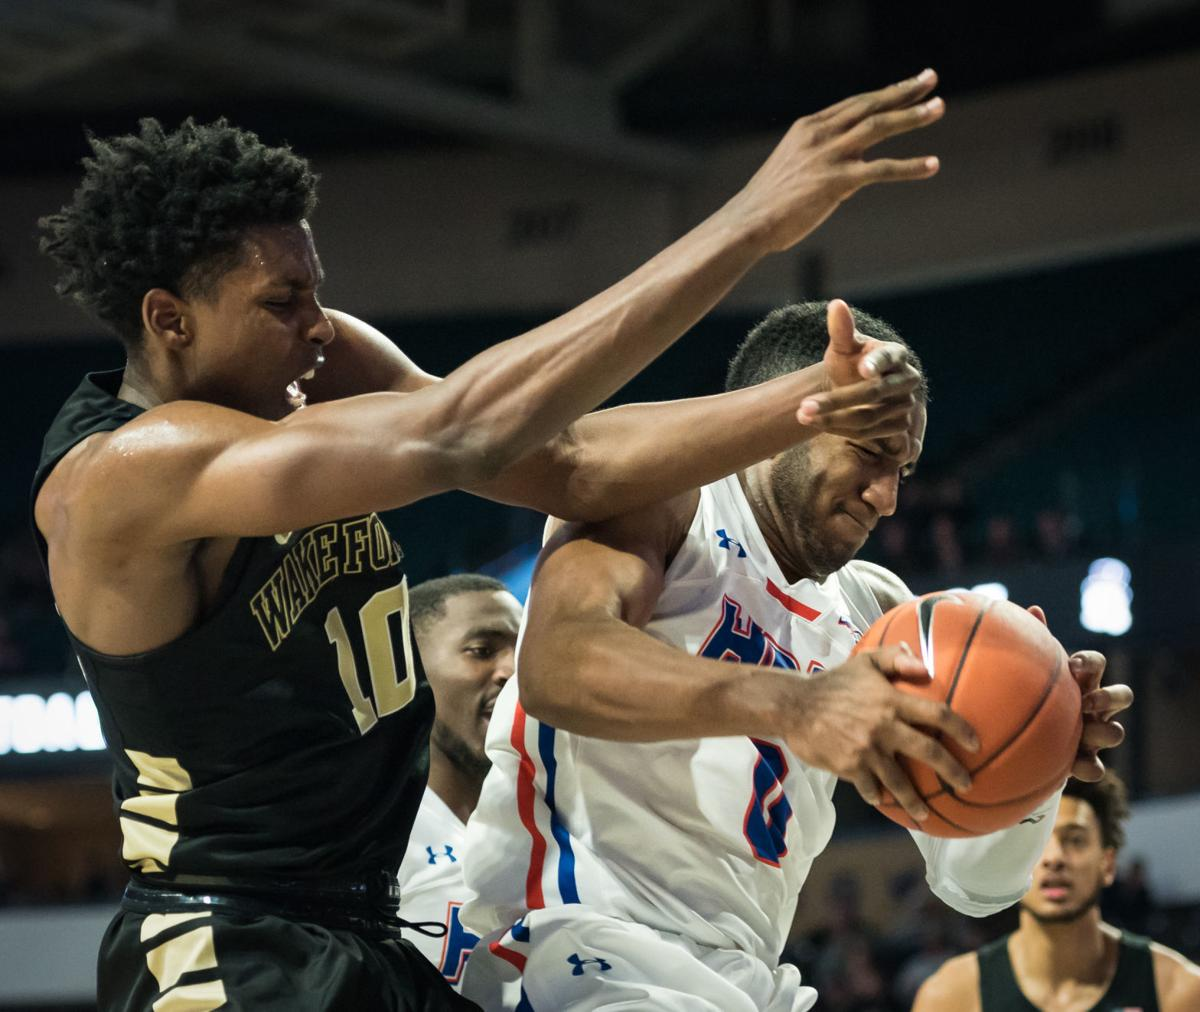 Wake Forest Houston Baptist Men's Basketball